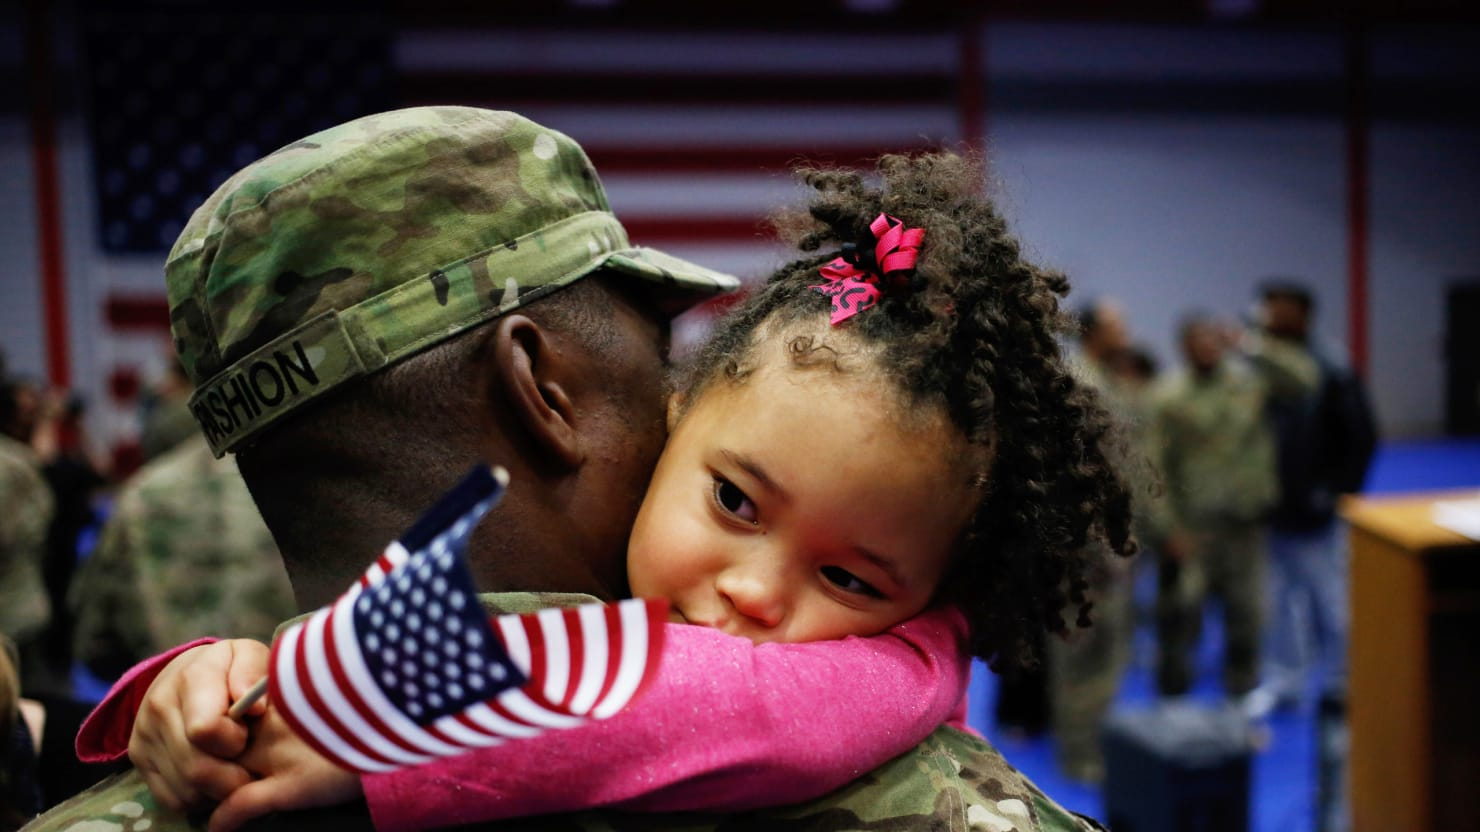 The Right-Wing is Furious Over Obama's Imaginary Attack on Military Families